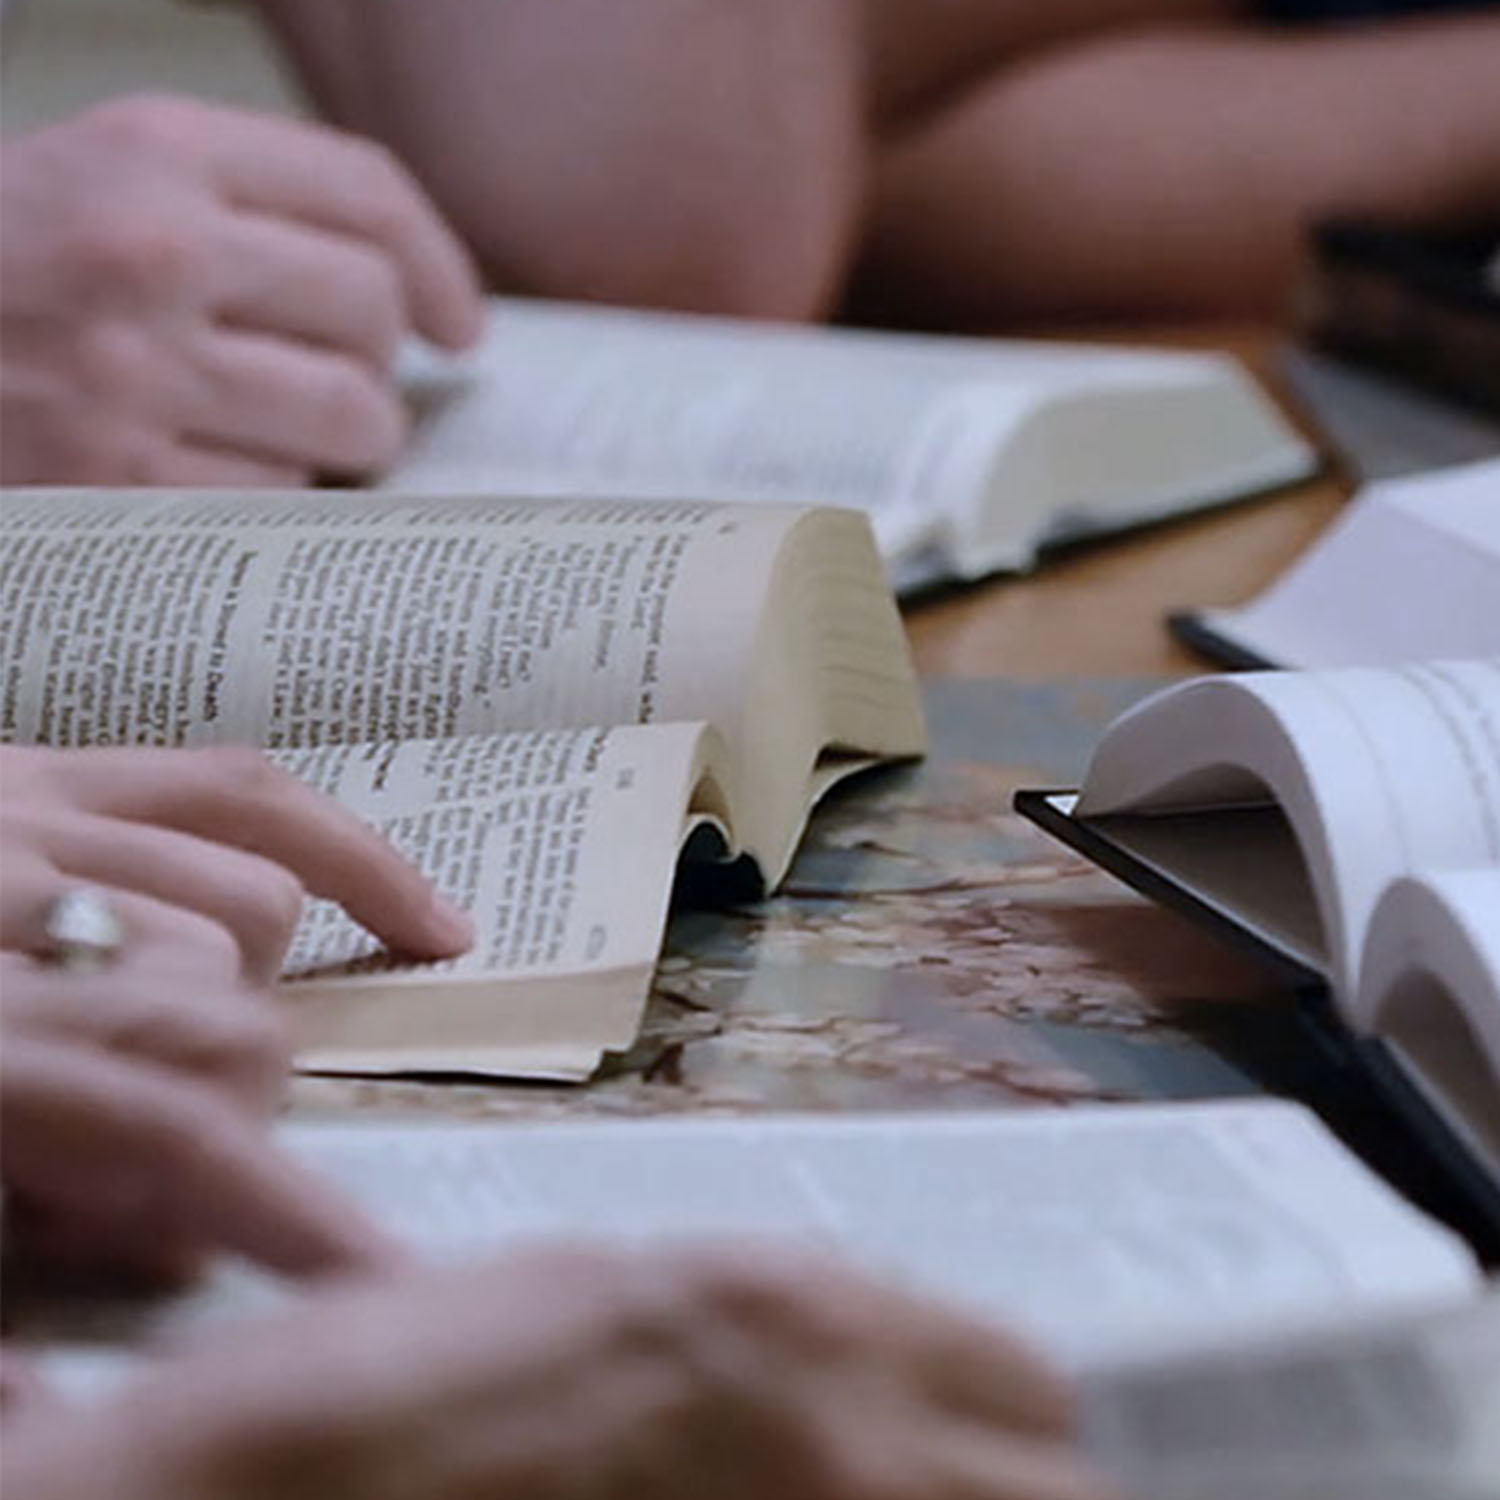 Women's Bible Study - Women of all ages meet together to study God's word on the 1st and 3rd Wednesdays of the month from 6:30 pm - 8:00 pm.